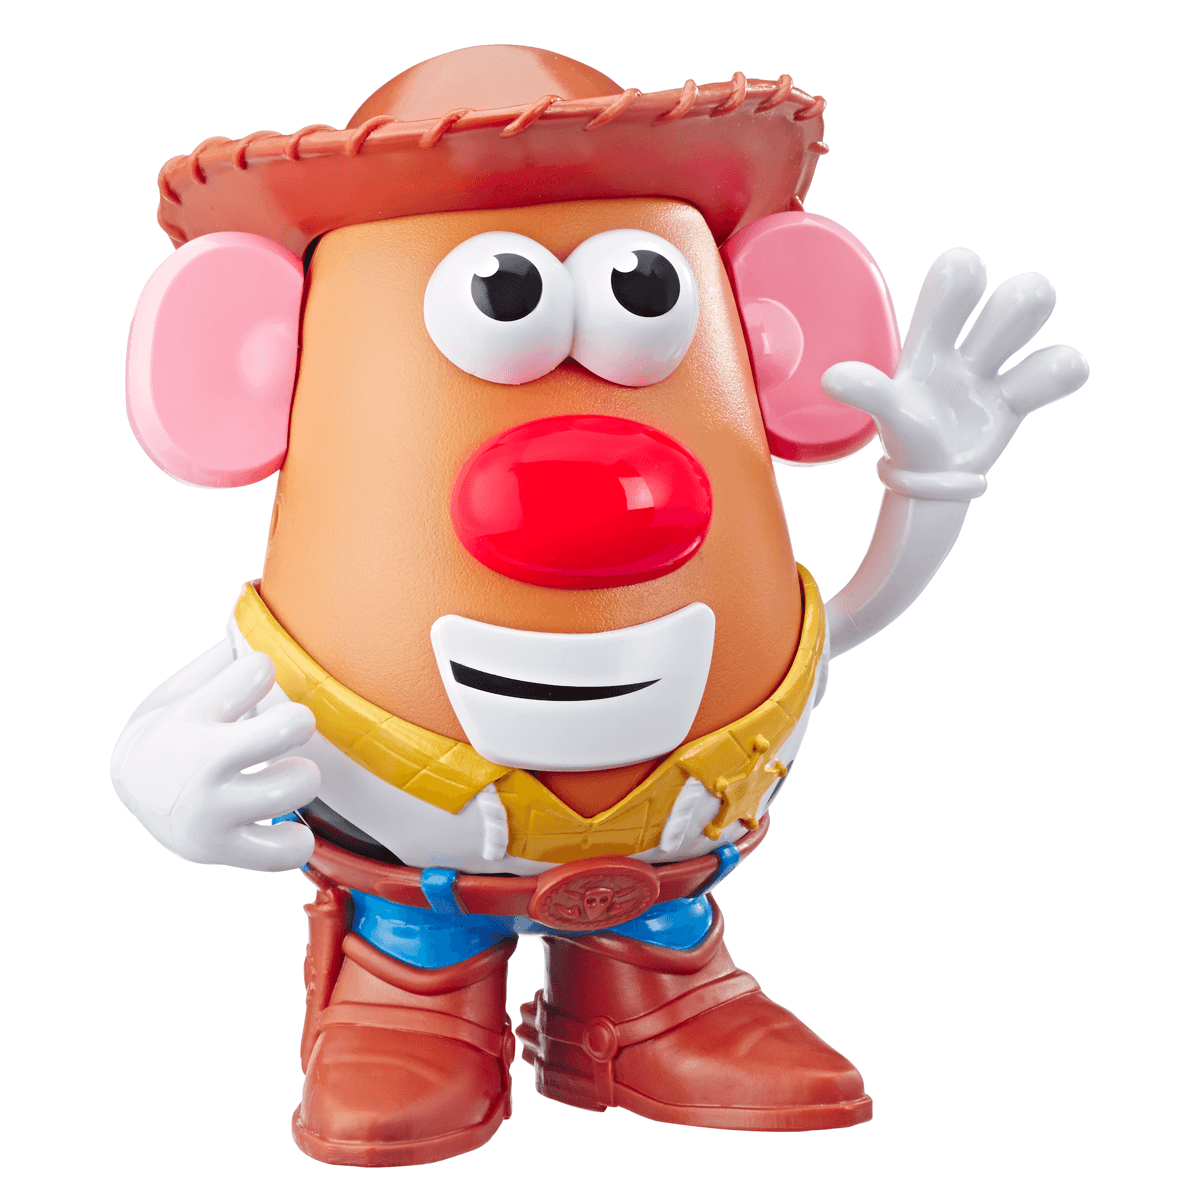 Disney Pixar Toy Story 4 Mr Potato Head Woodys Tater Roundup